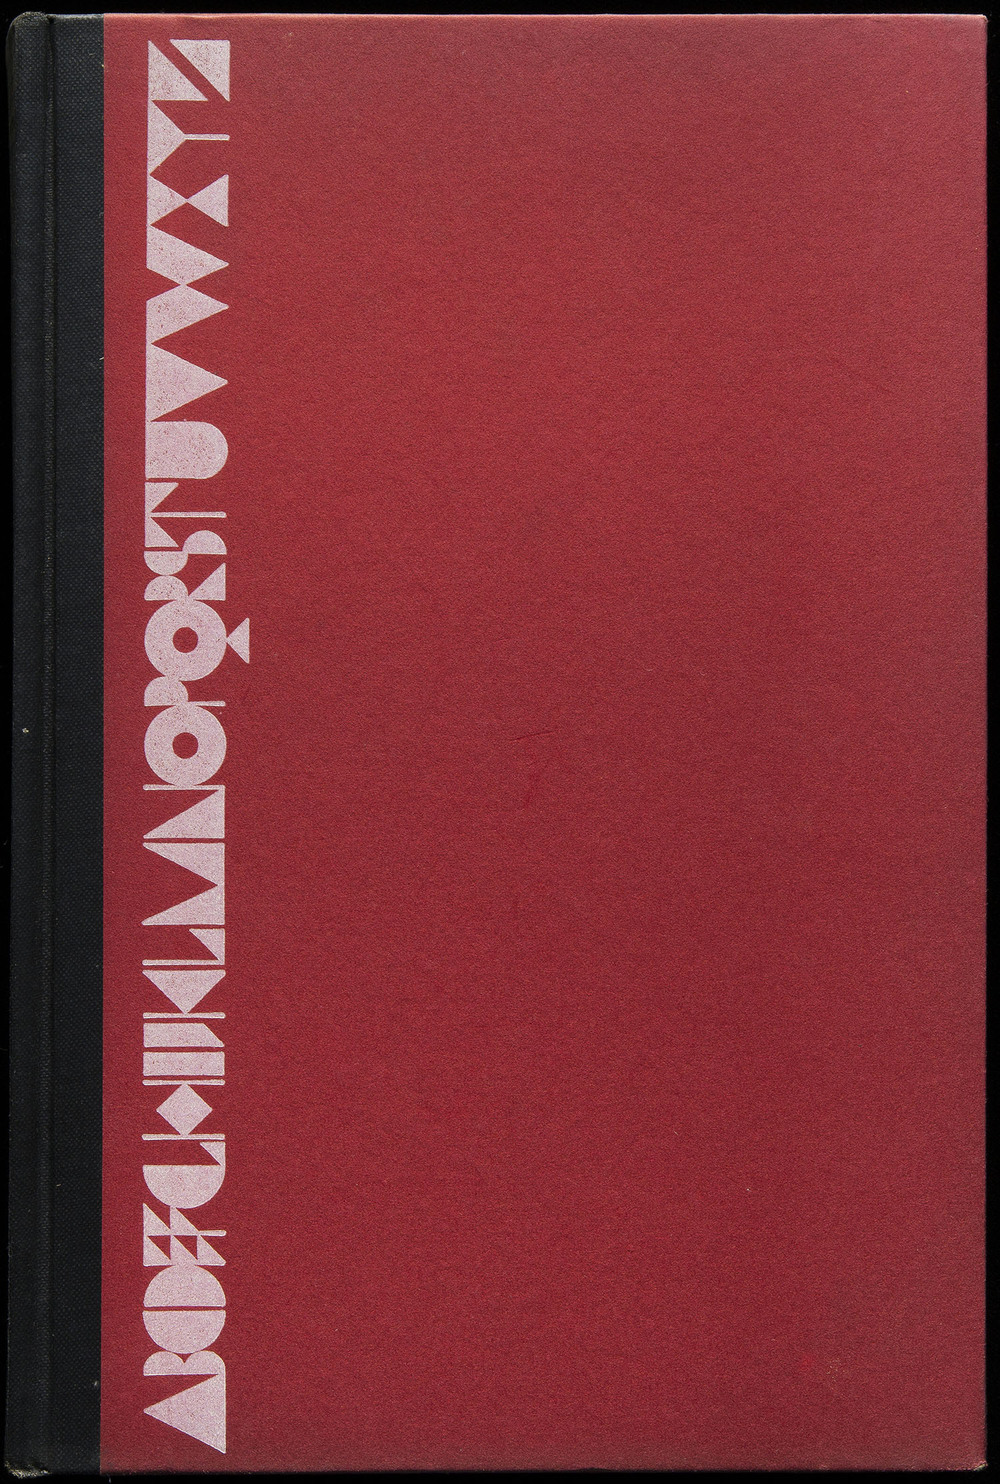 Cover design of  American Alphabets  by Paul Hollister, Harper, New York, 1930, 14.9 x 22.5 cm